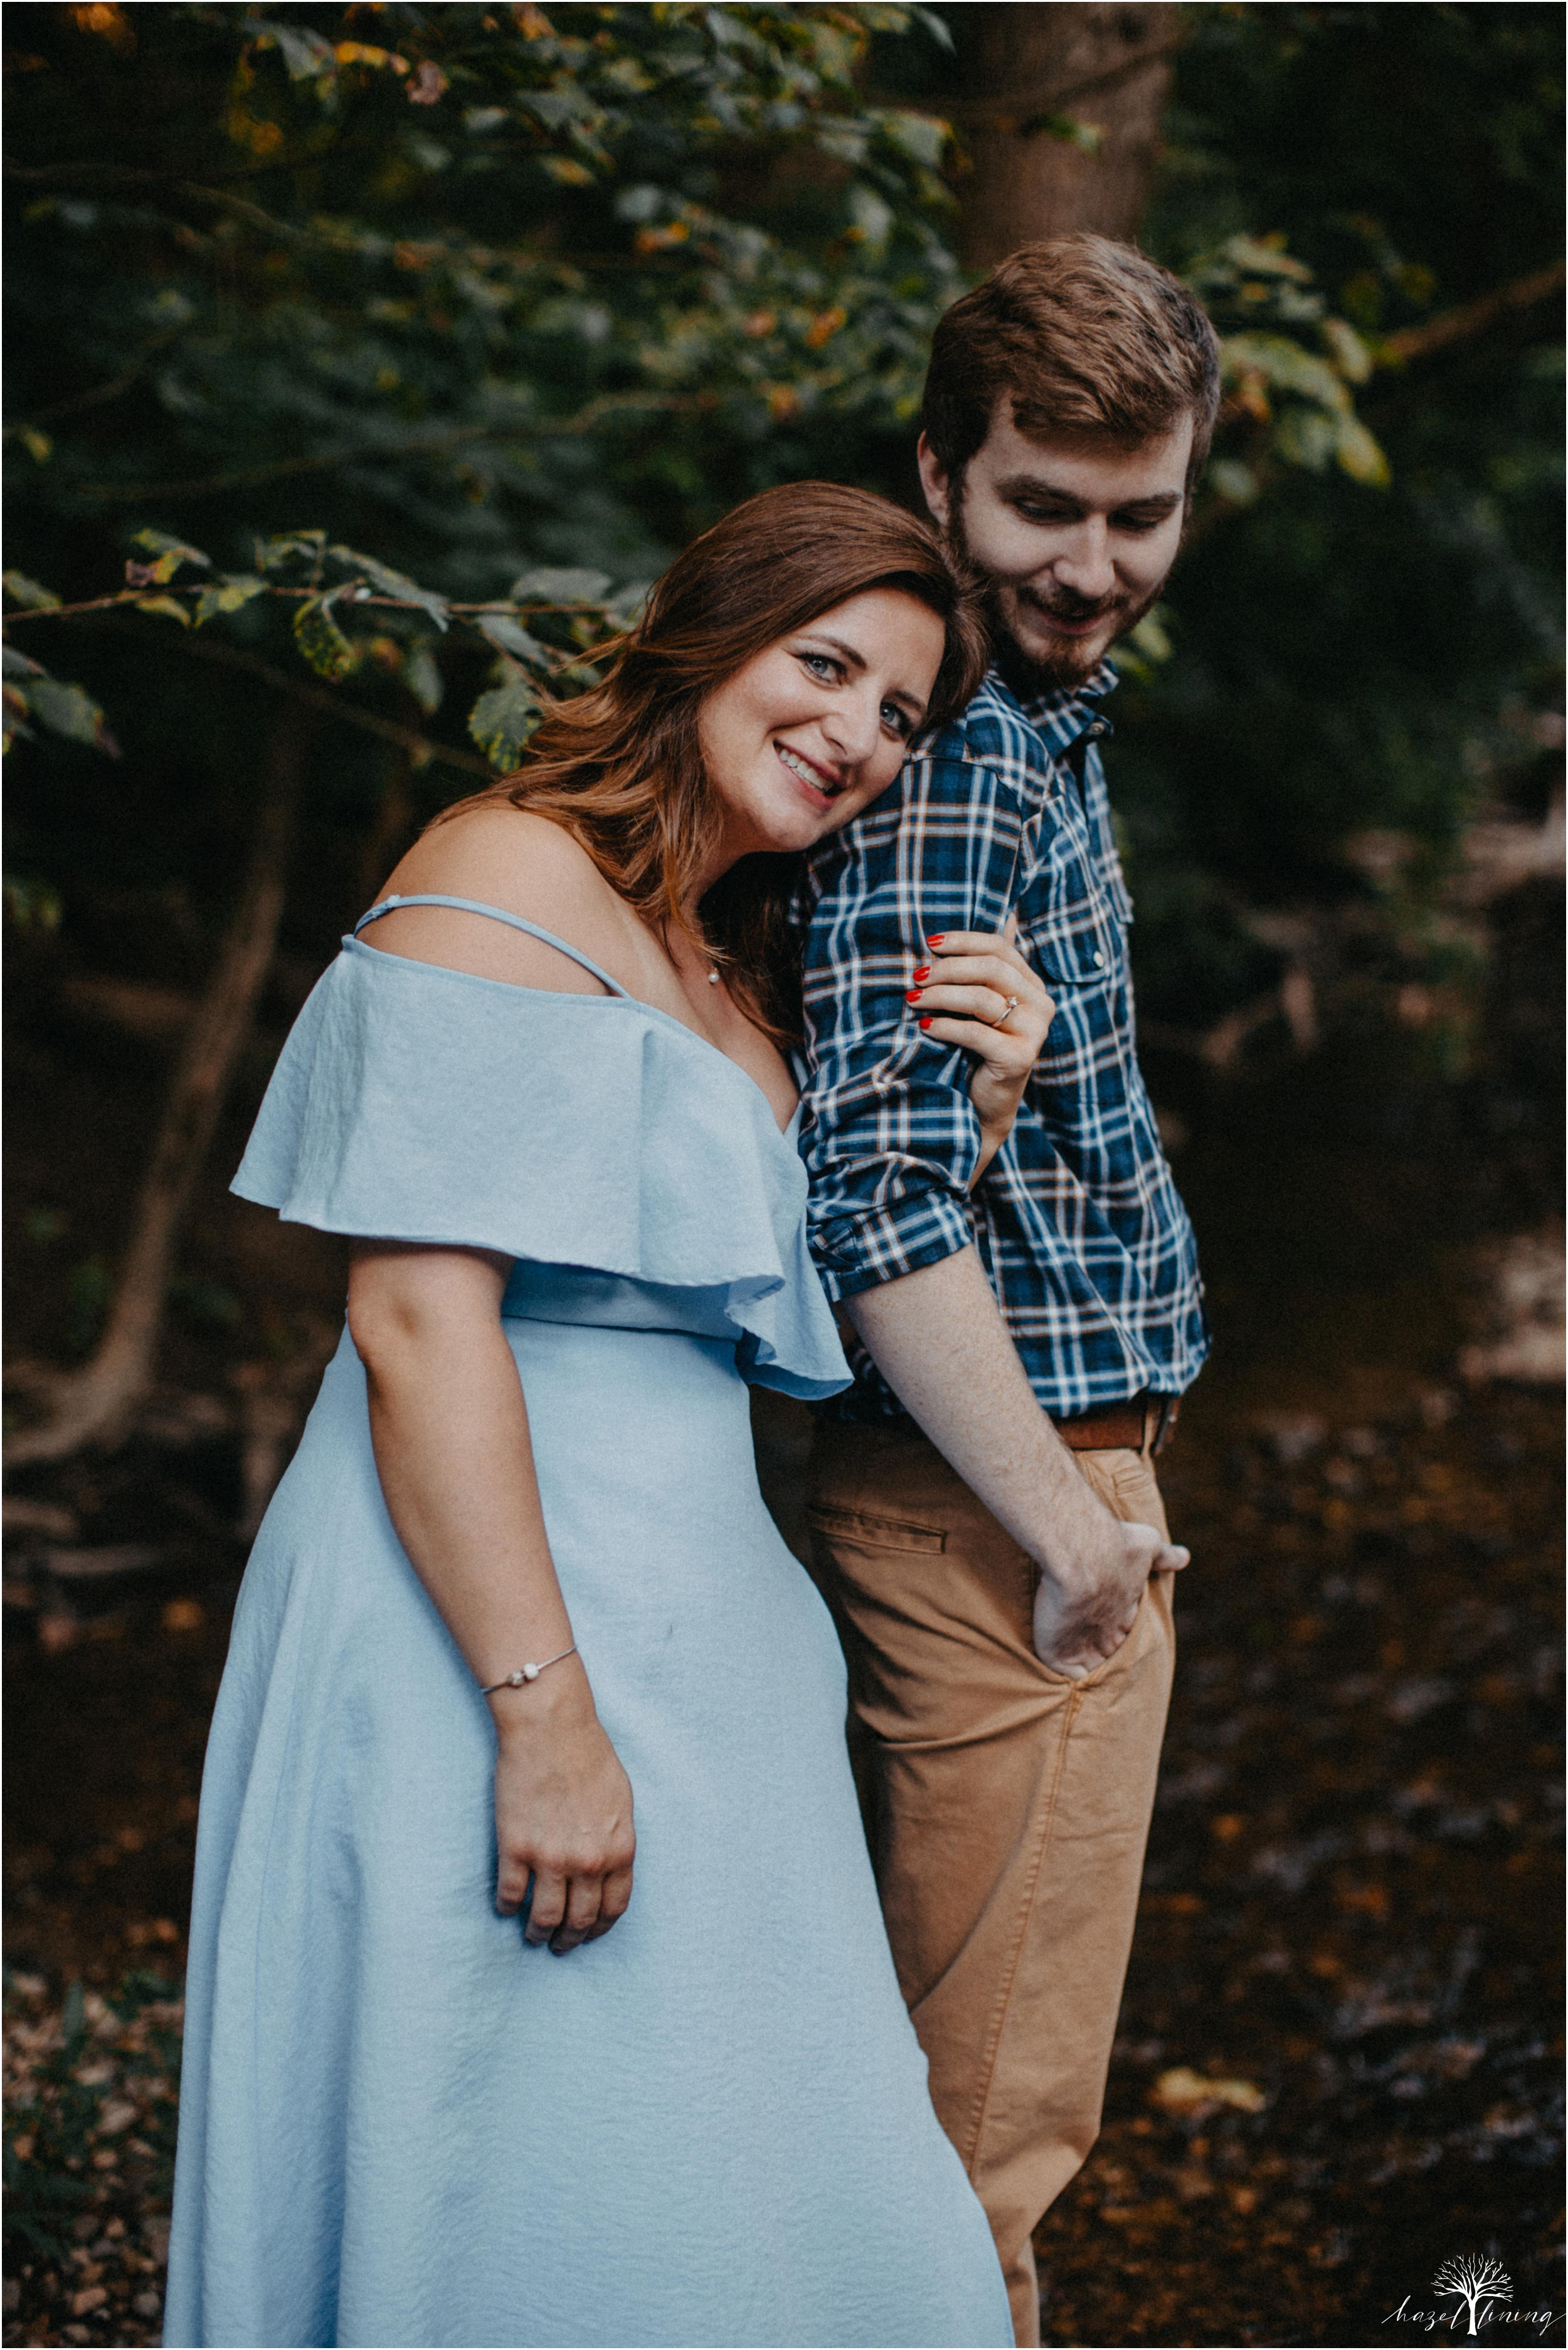 paige-kochey-chris-graham-valley-green-wissahickon-park-philadelphia-summer-engagement-session-hazel-lining-photography-destination-elopement-wedding-engagement-photography_0024.jpg